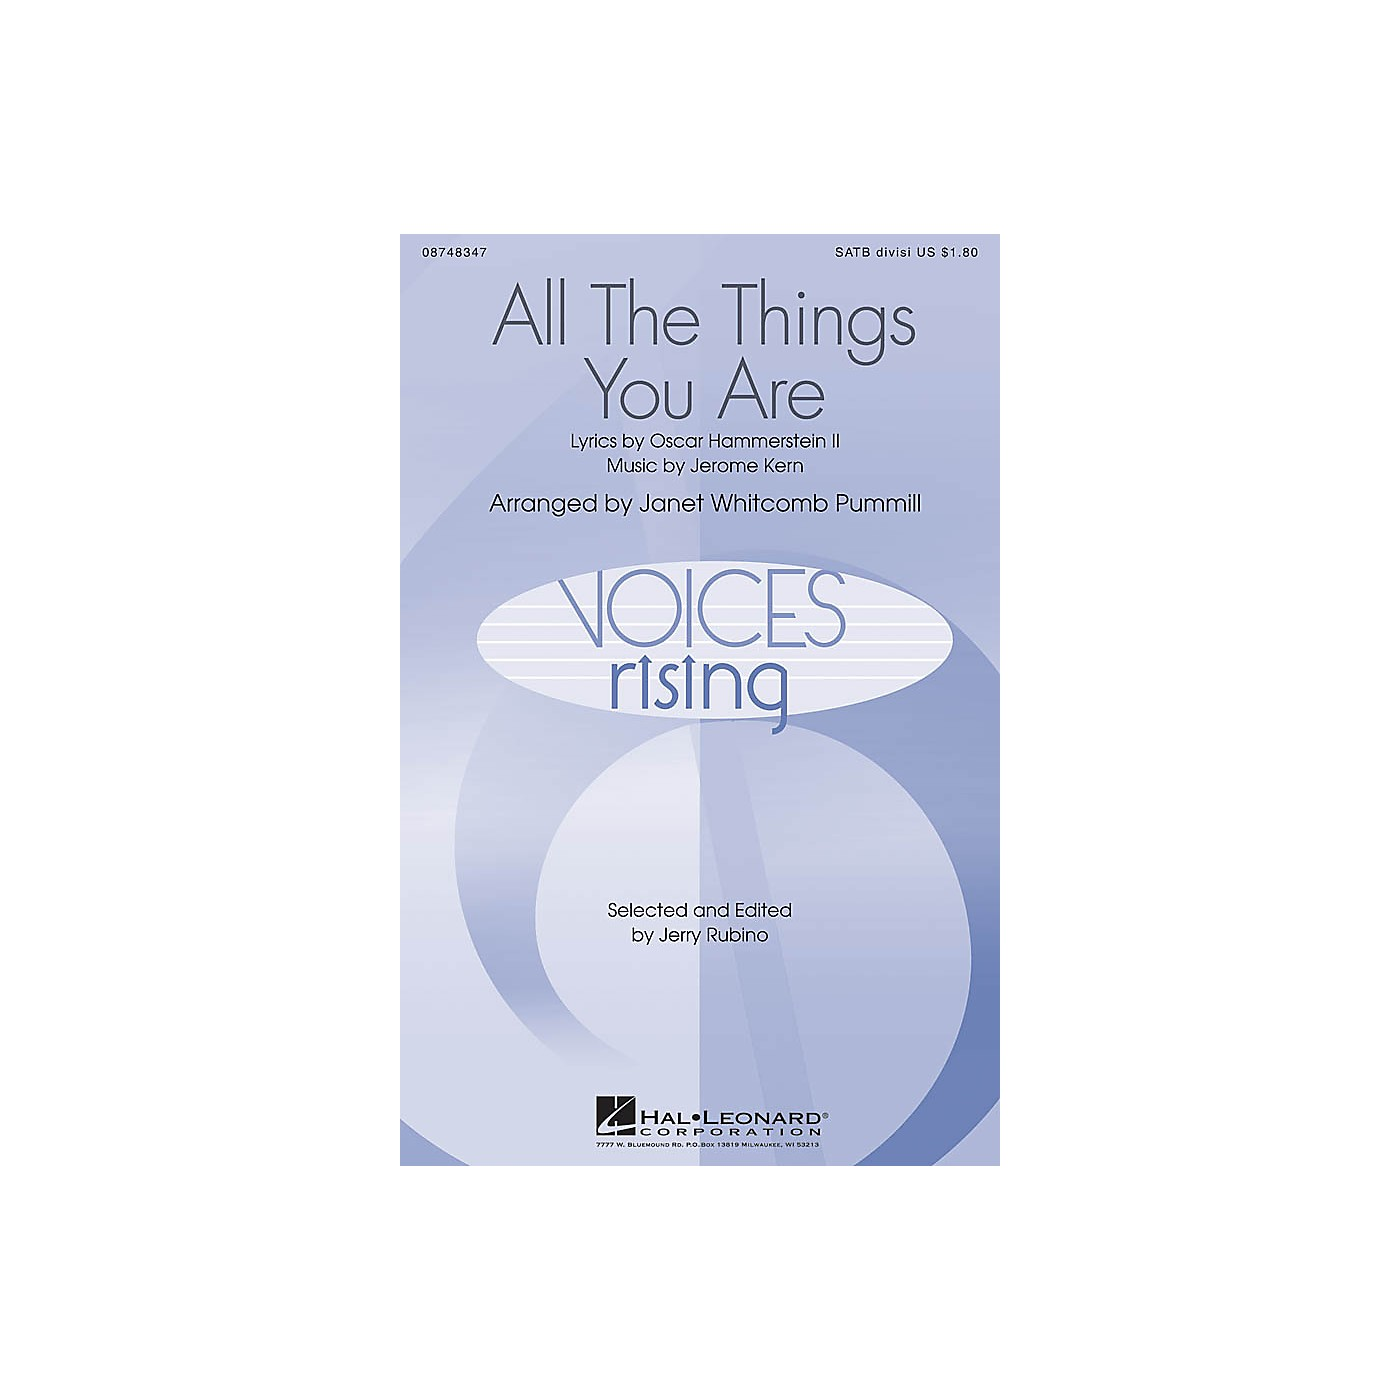 Hal Leonard All The Things You Are SATB Divisi arranged by Janet Whitcomb Pummill thumbnail